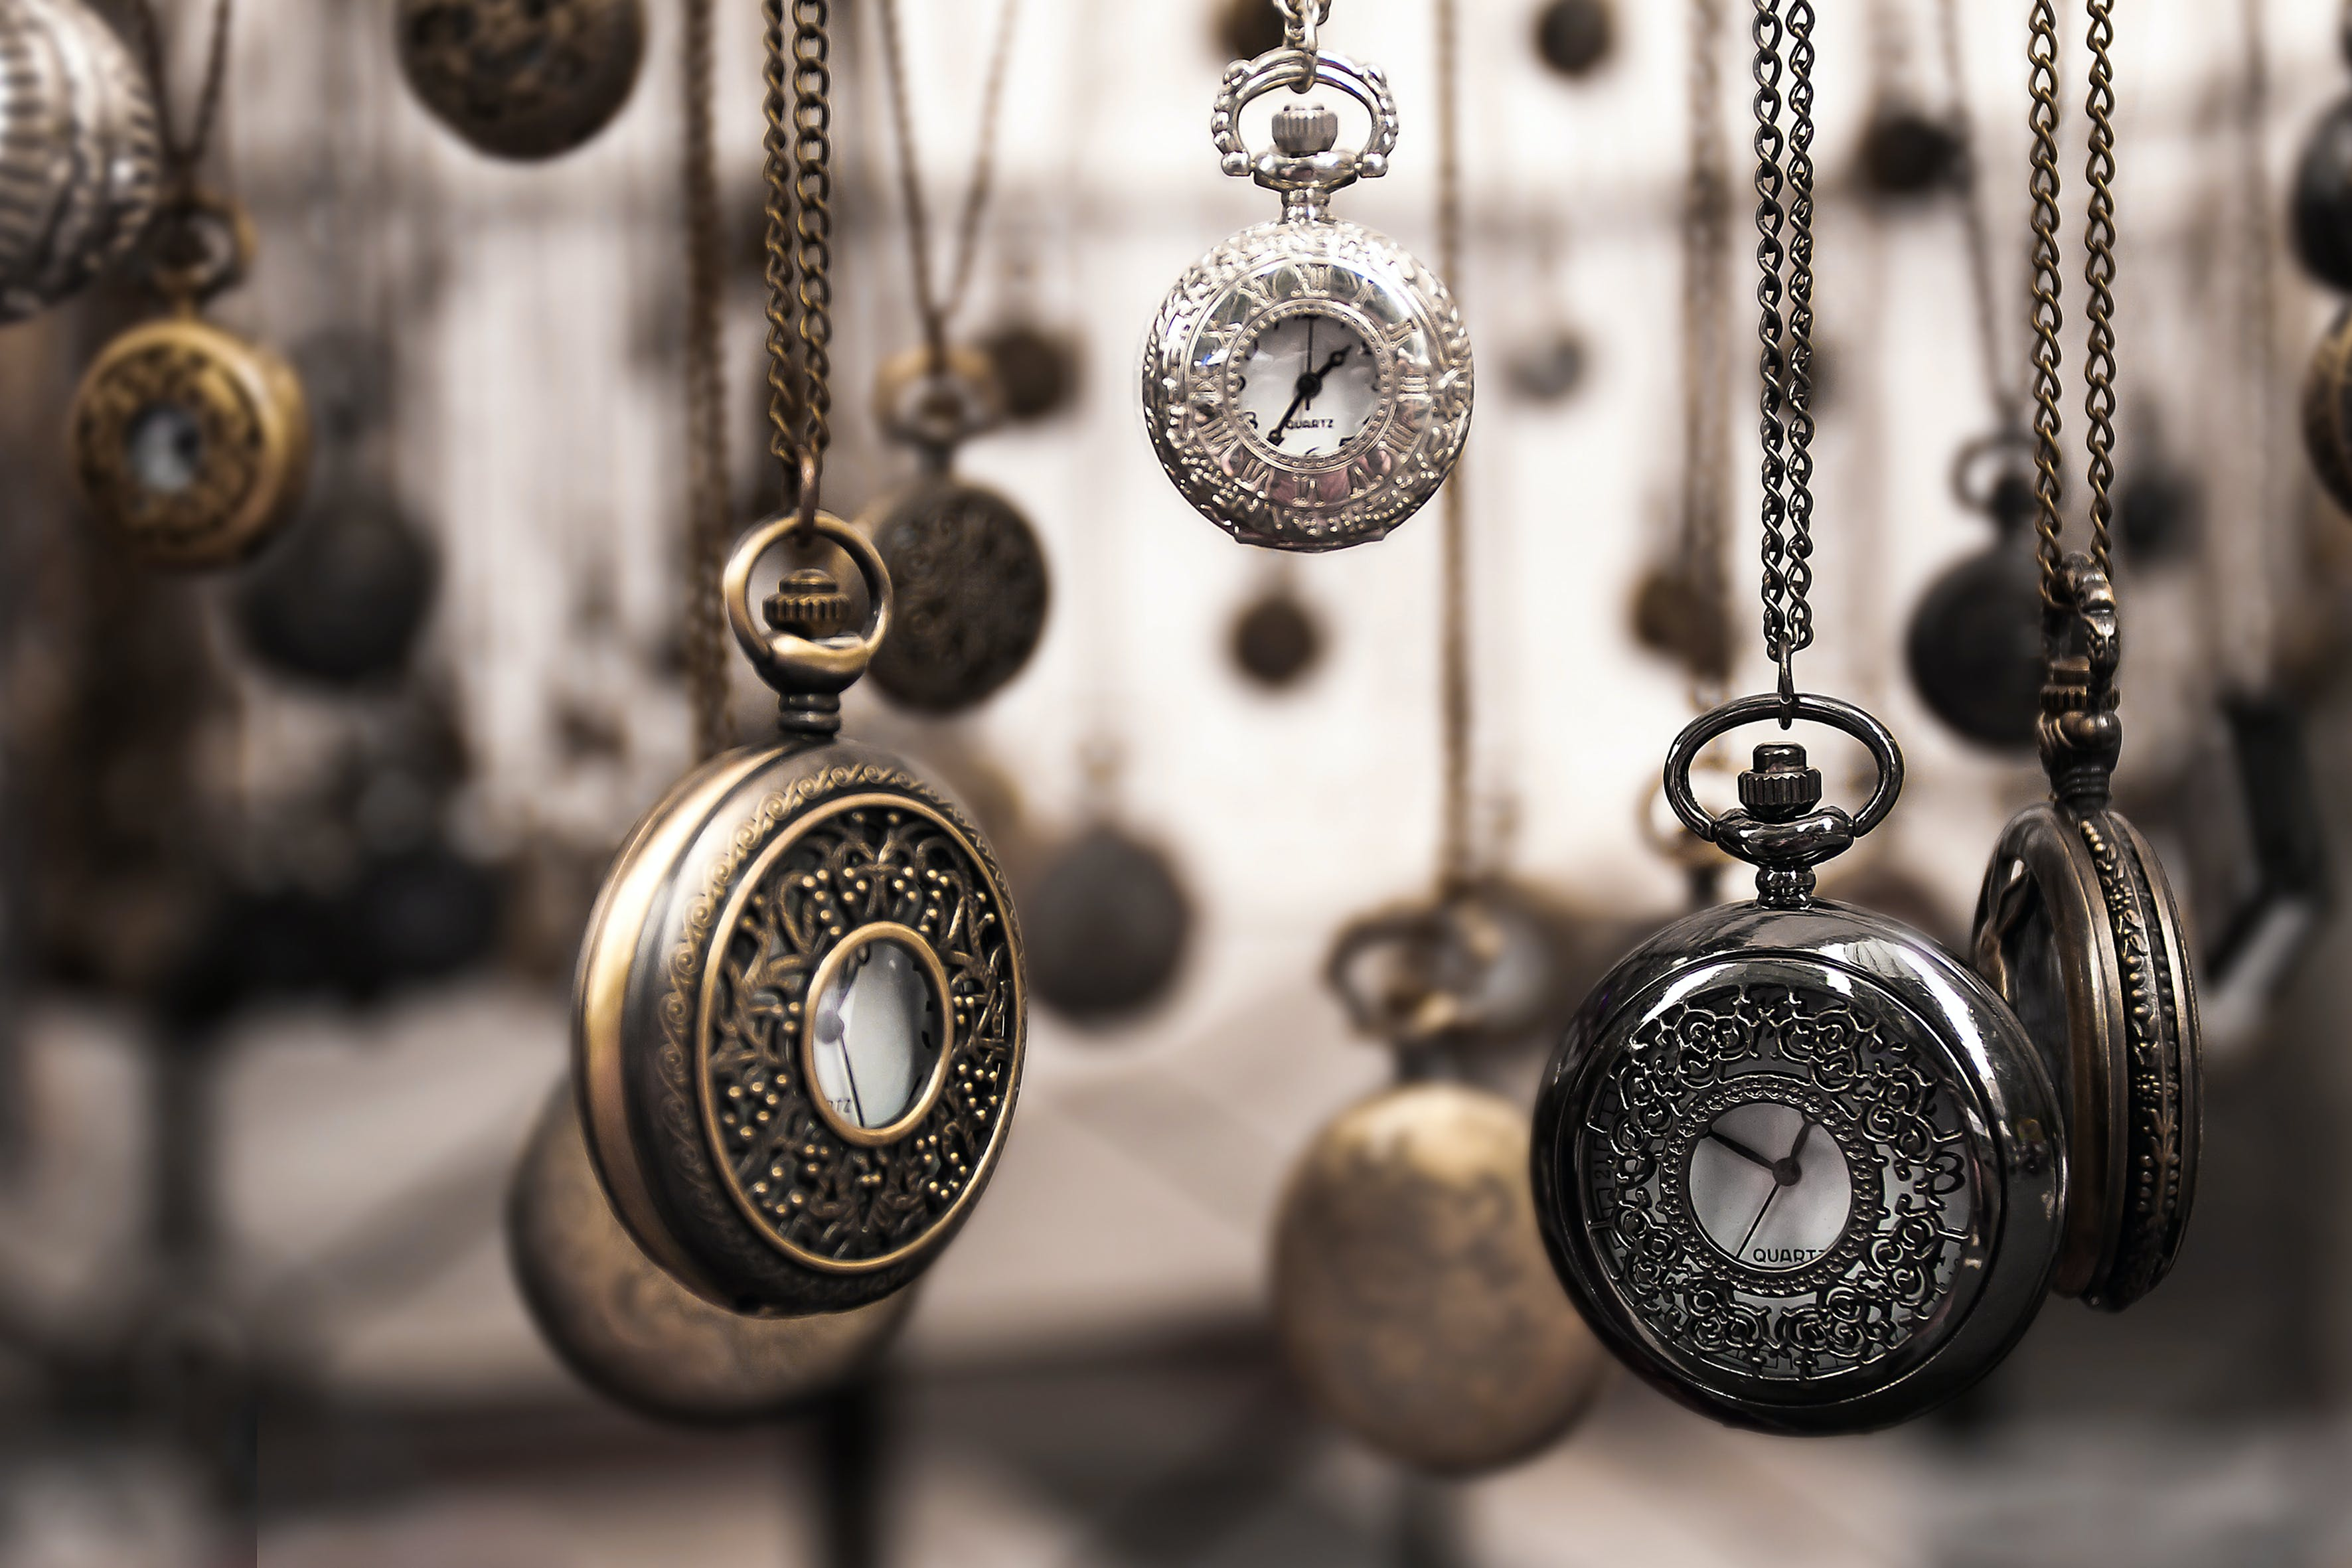 Assorted Silver-colored Pocket Watch Lot Selective Focus Photo